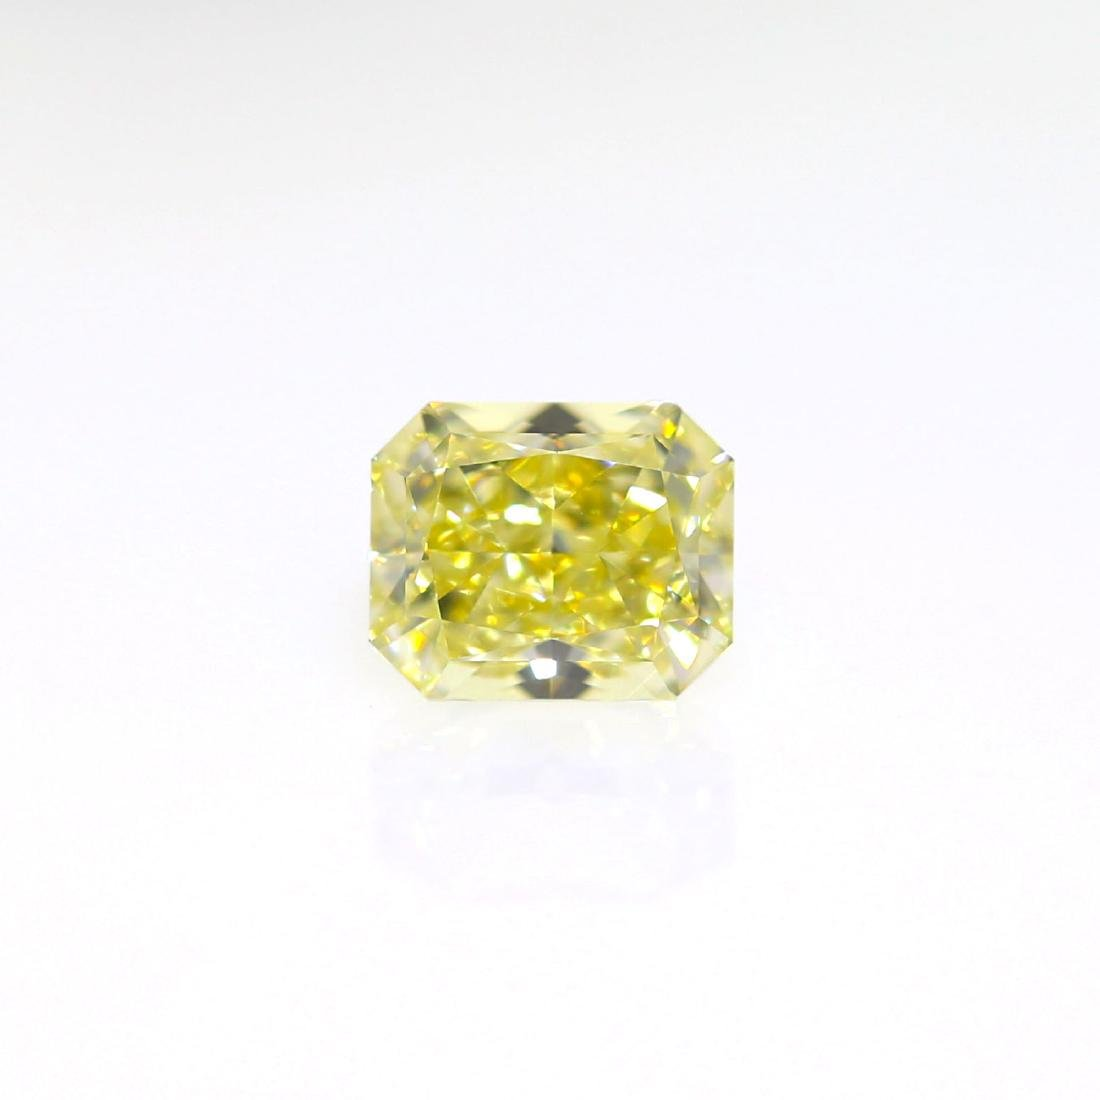 Natural Fancy Light Yellow 1.02 ct Cushion VVS1